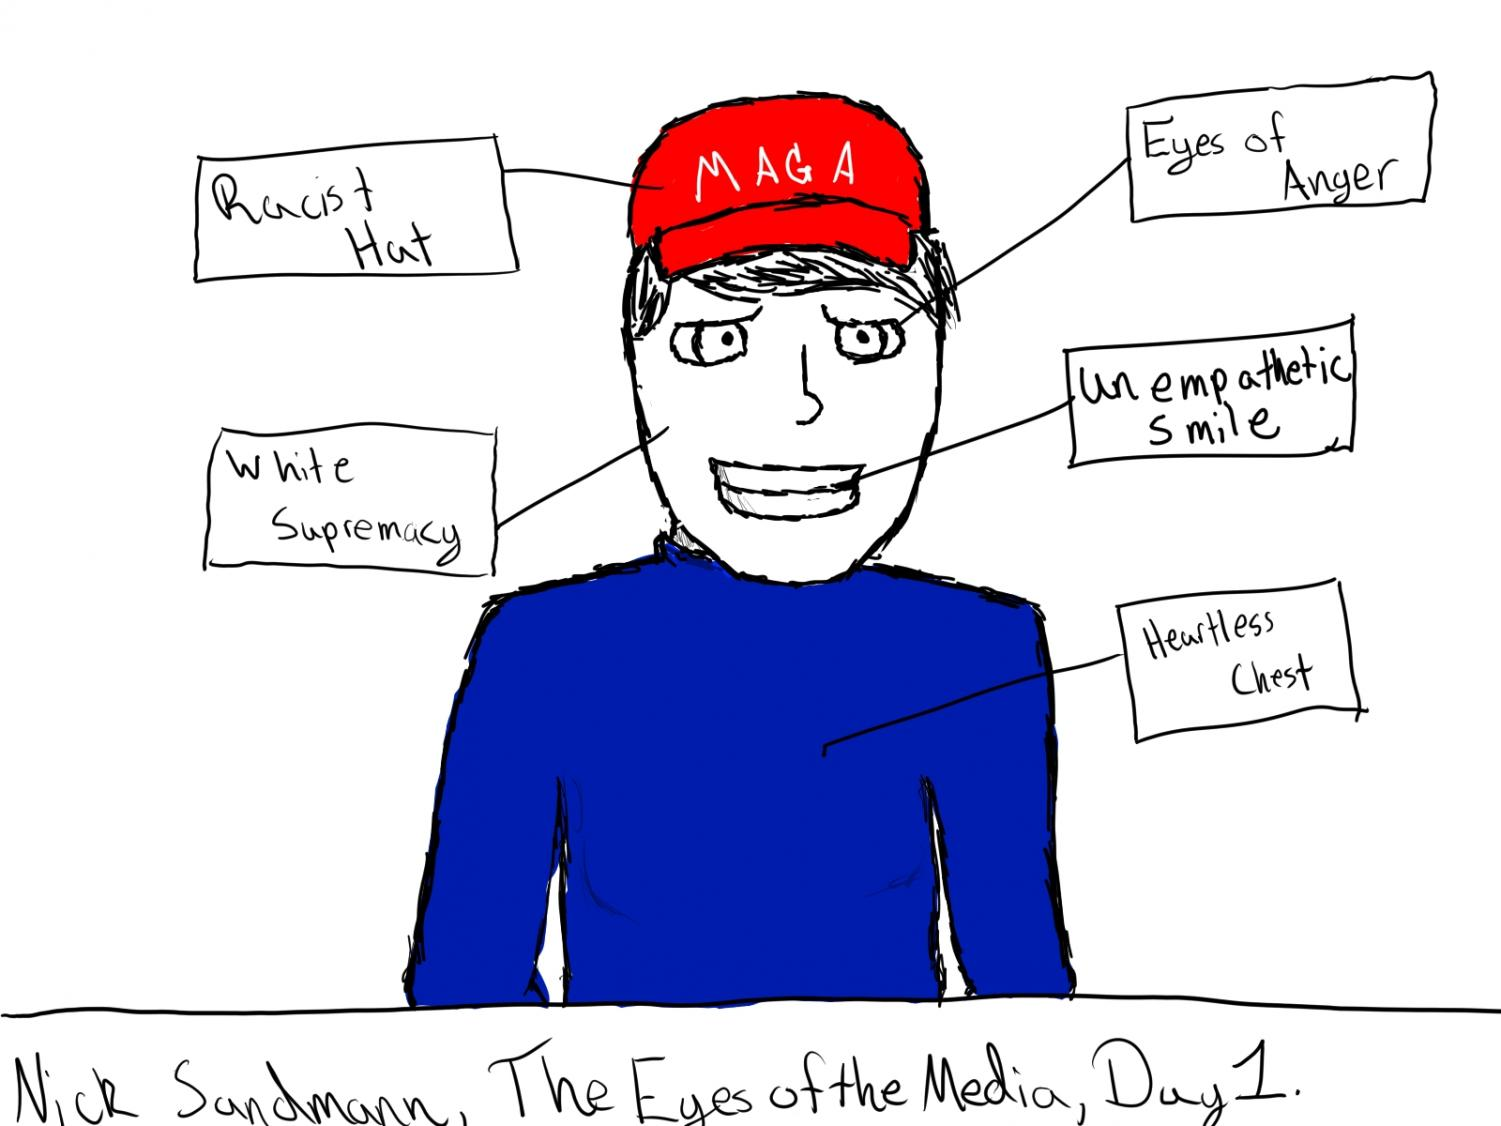 Journalists' coverage of Nick Sandmann and the Covington Catholic boys seemed one-sided...at least on the first day of coverage. As facts unfolded, this initial view of Sandmann was debunked by many in the media.